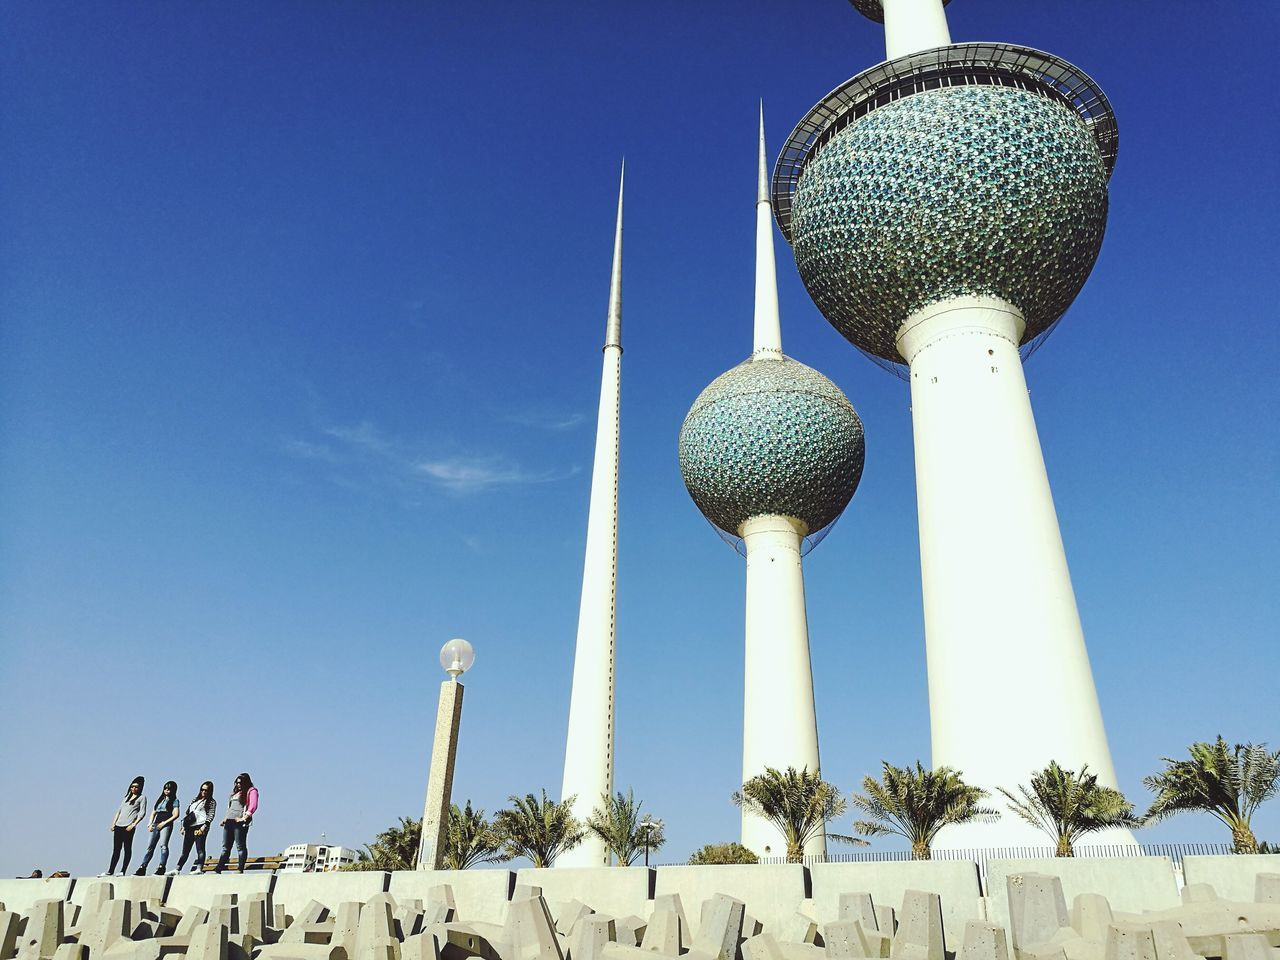 Beautifully Organized Architecture Low Angle View Kuwait Towers Blue Sky Outdoors Day TogethernessVariation Tree Art Young Women Life Style Concrete Structure friendship